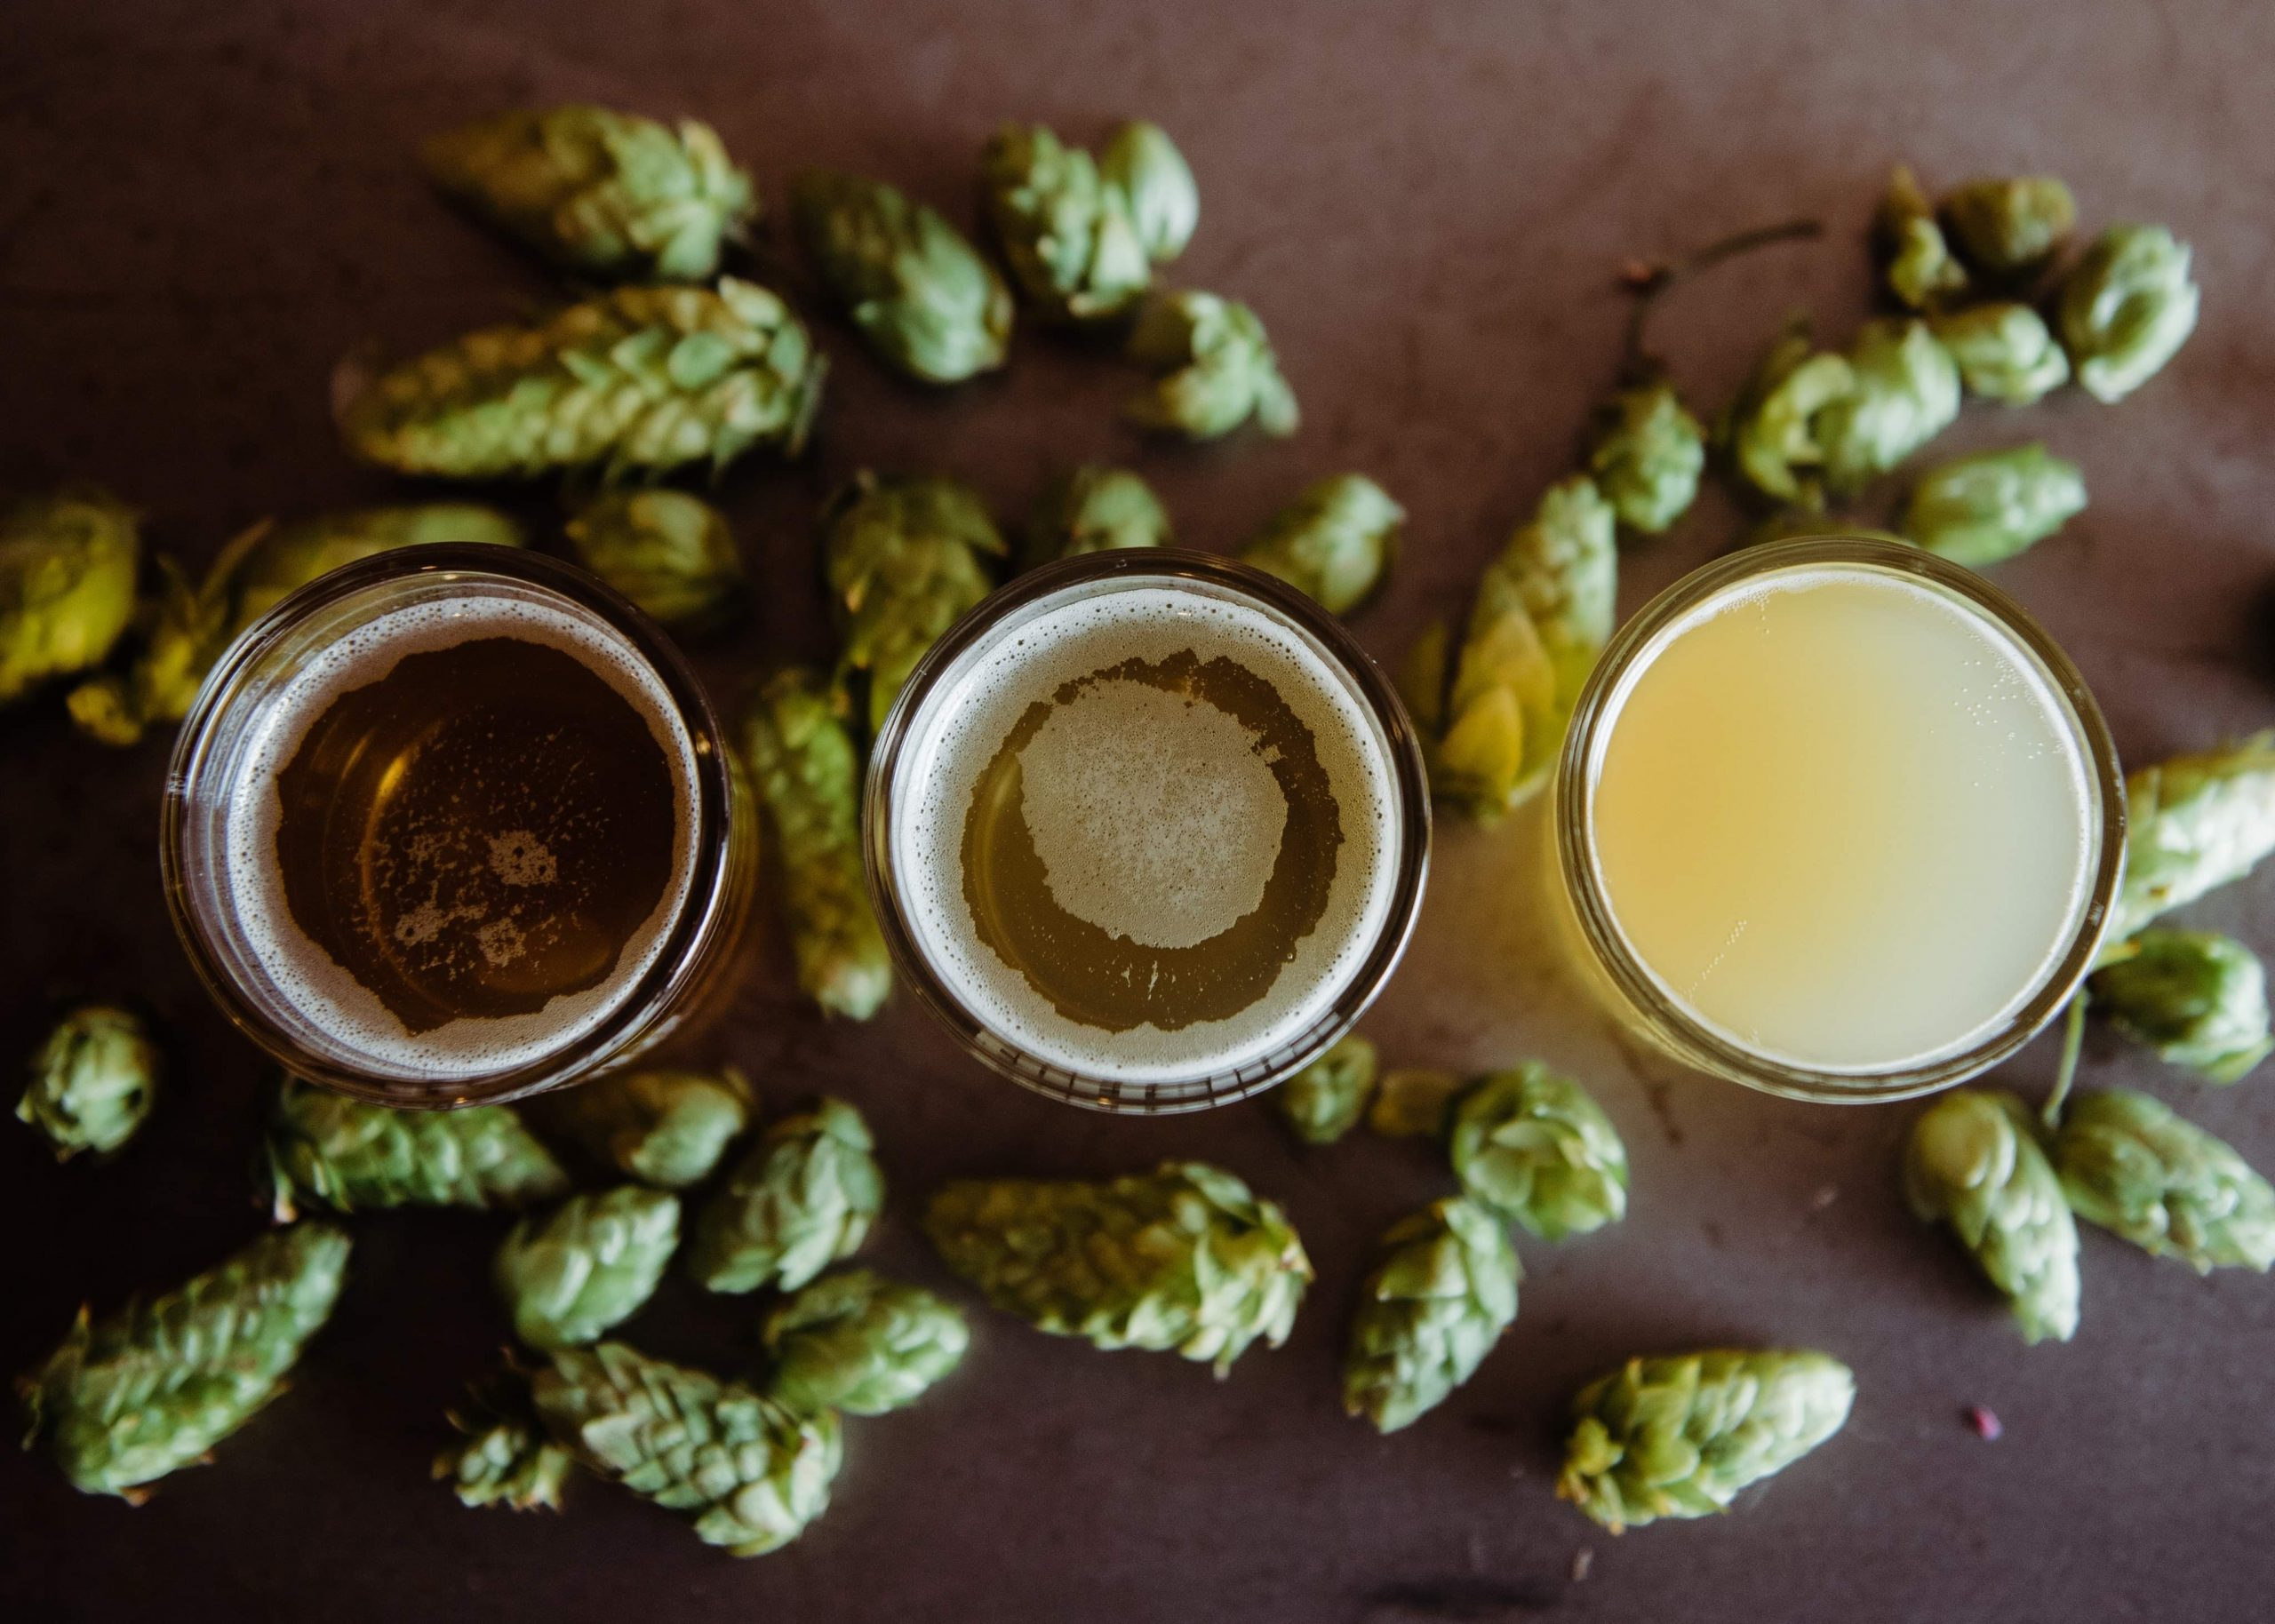 brewing browser, the homebrewing resource for making beer at home